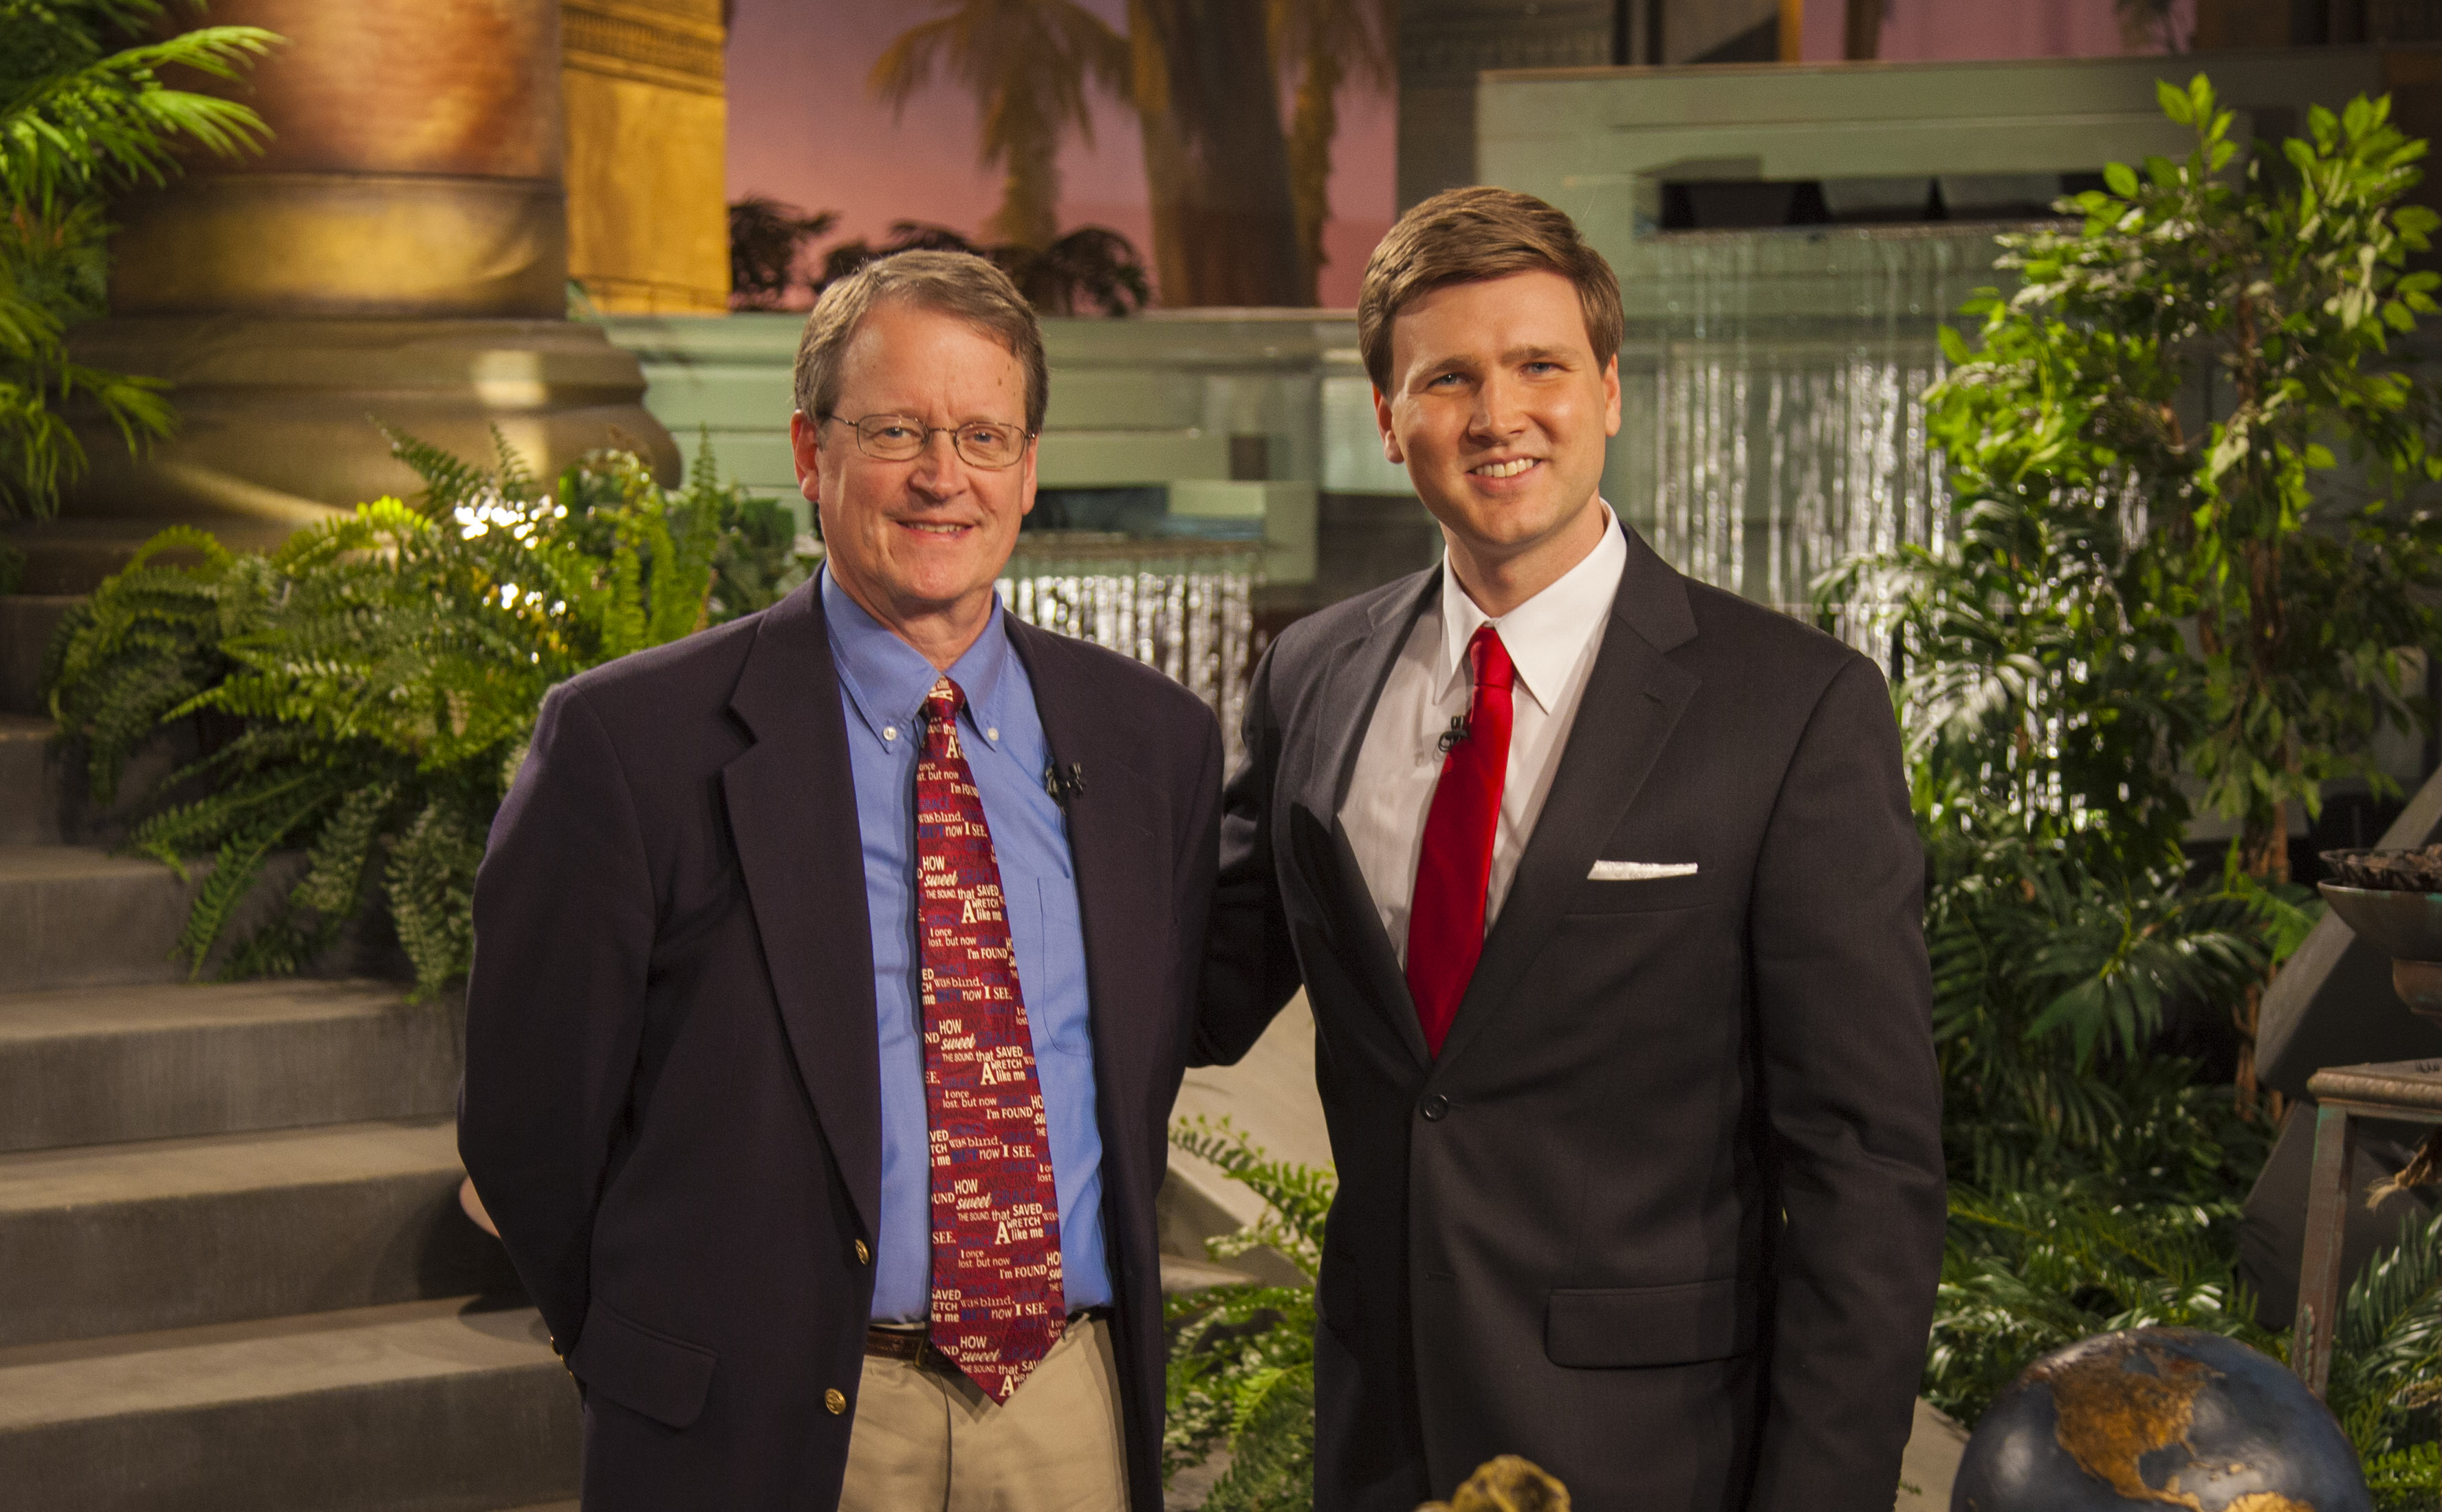 Apemen, Adam, & The Gospel – With David Rives and Dr. Terry Mortenson on TBN